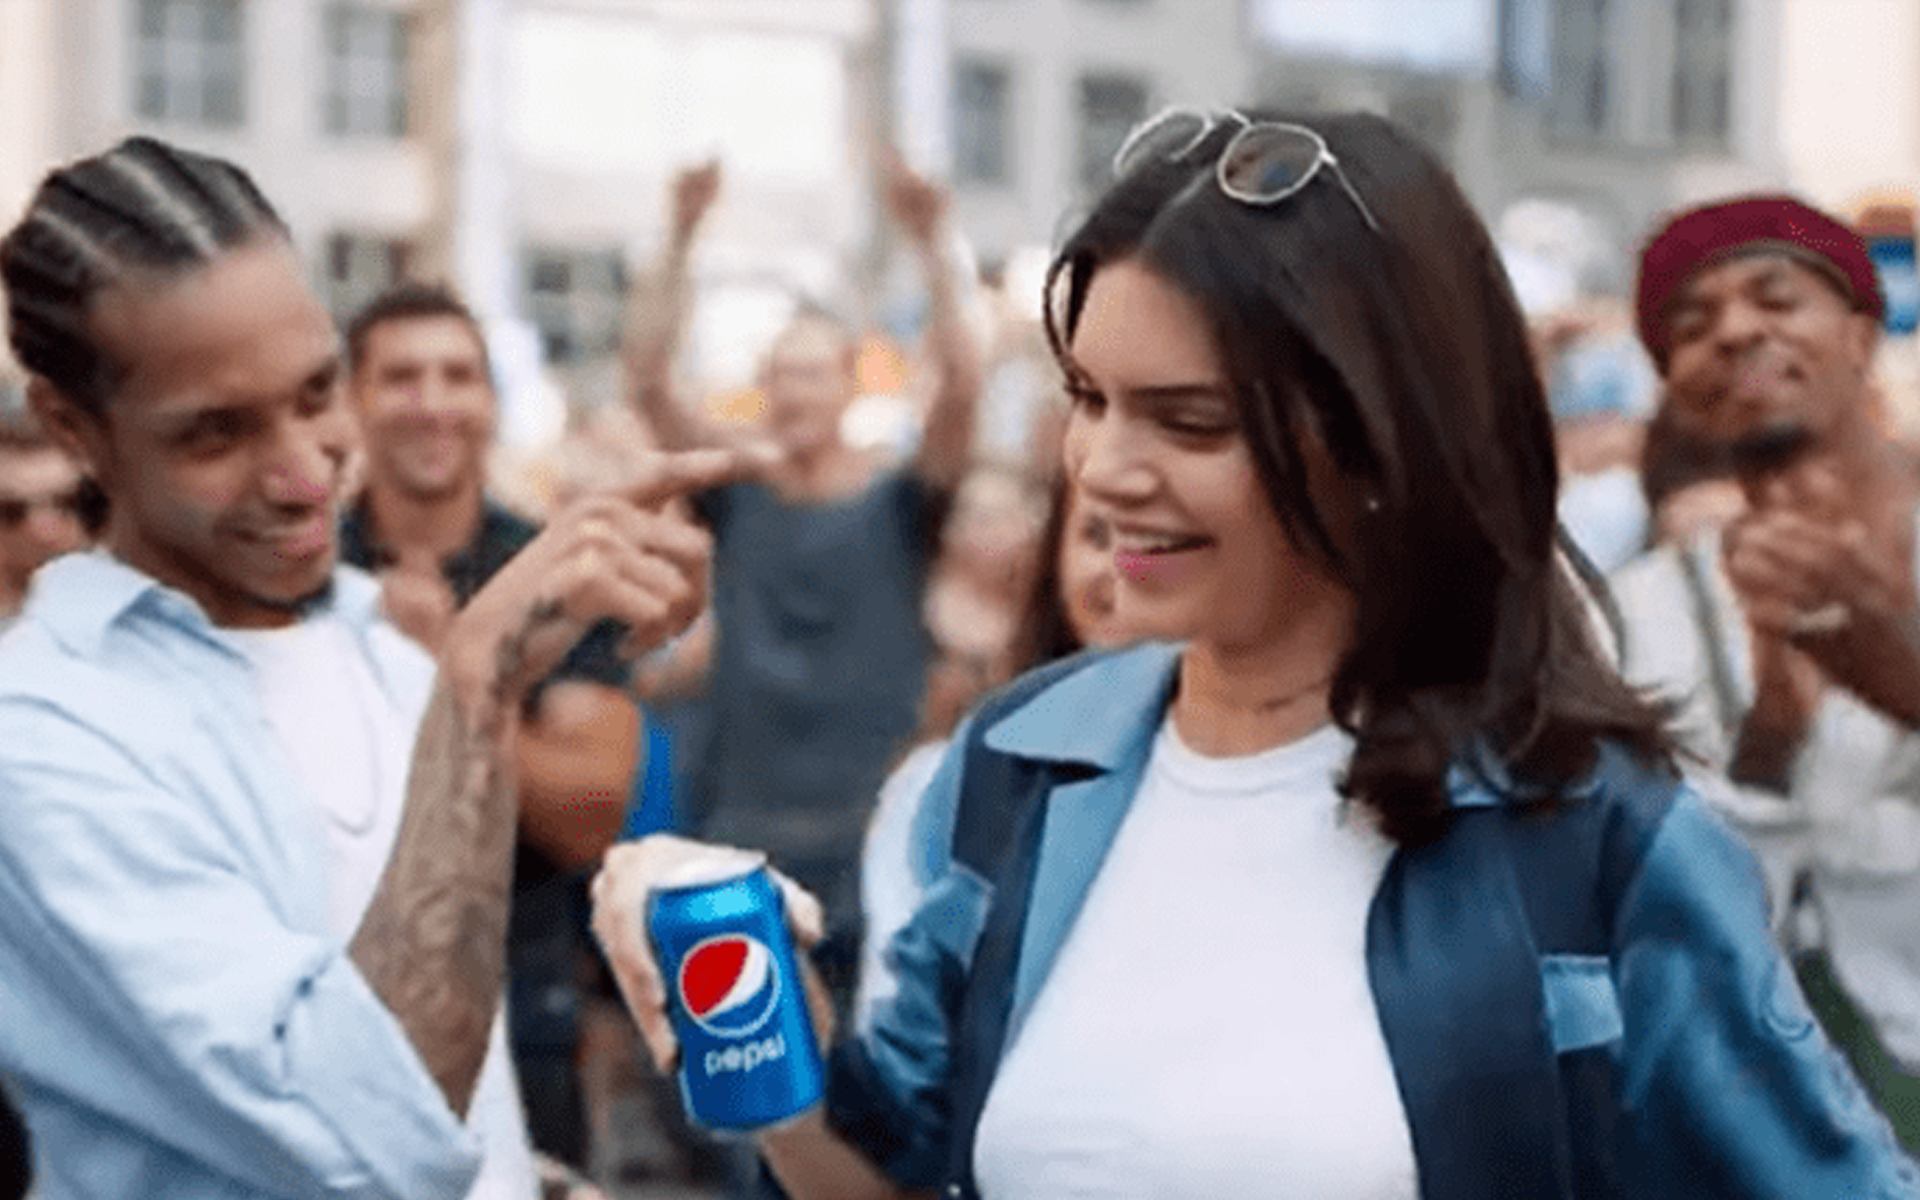 Rioting Nationwide Abruptly Ends As Someone Cracks Open An Ice-Cold Pepsi